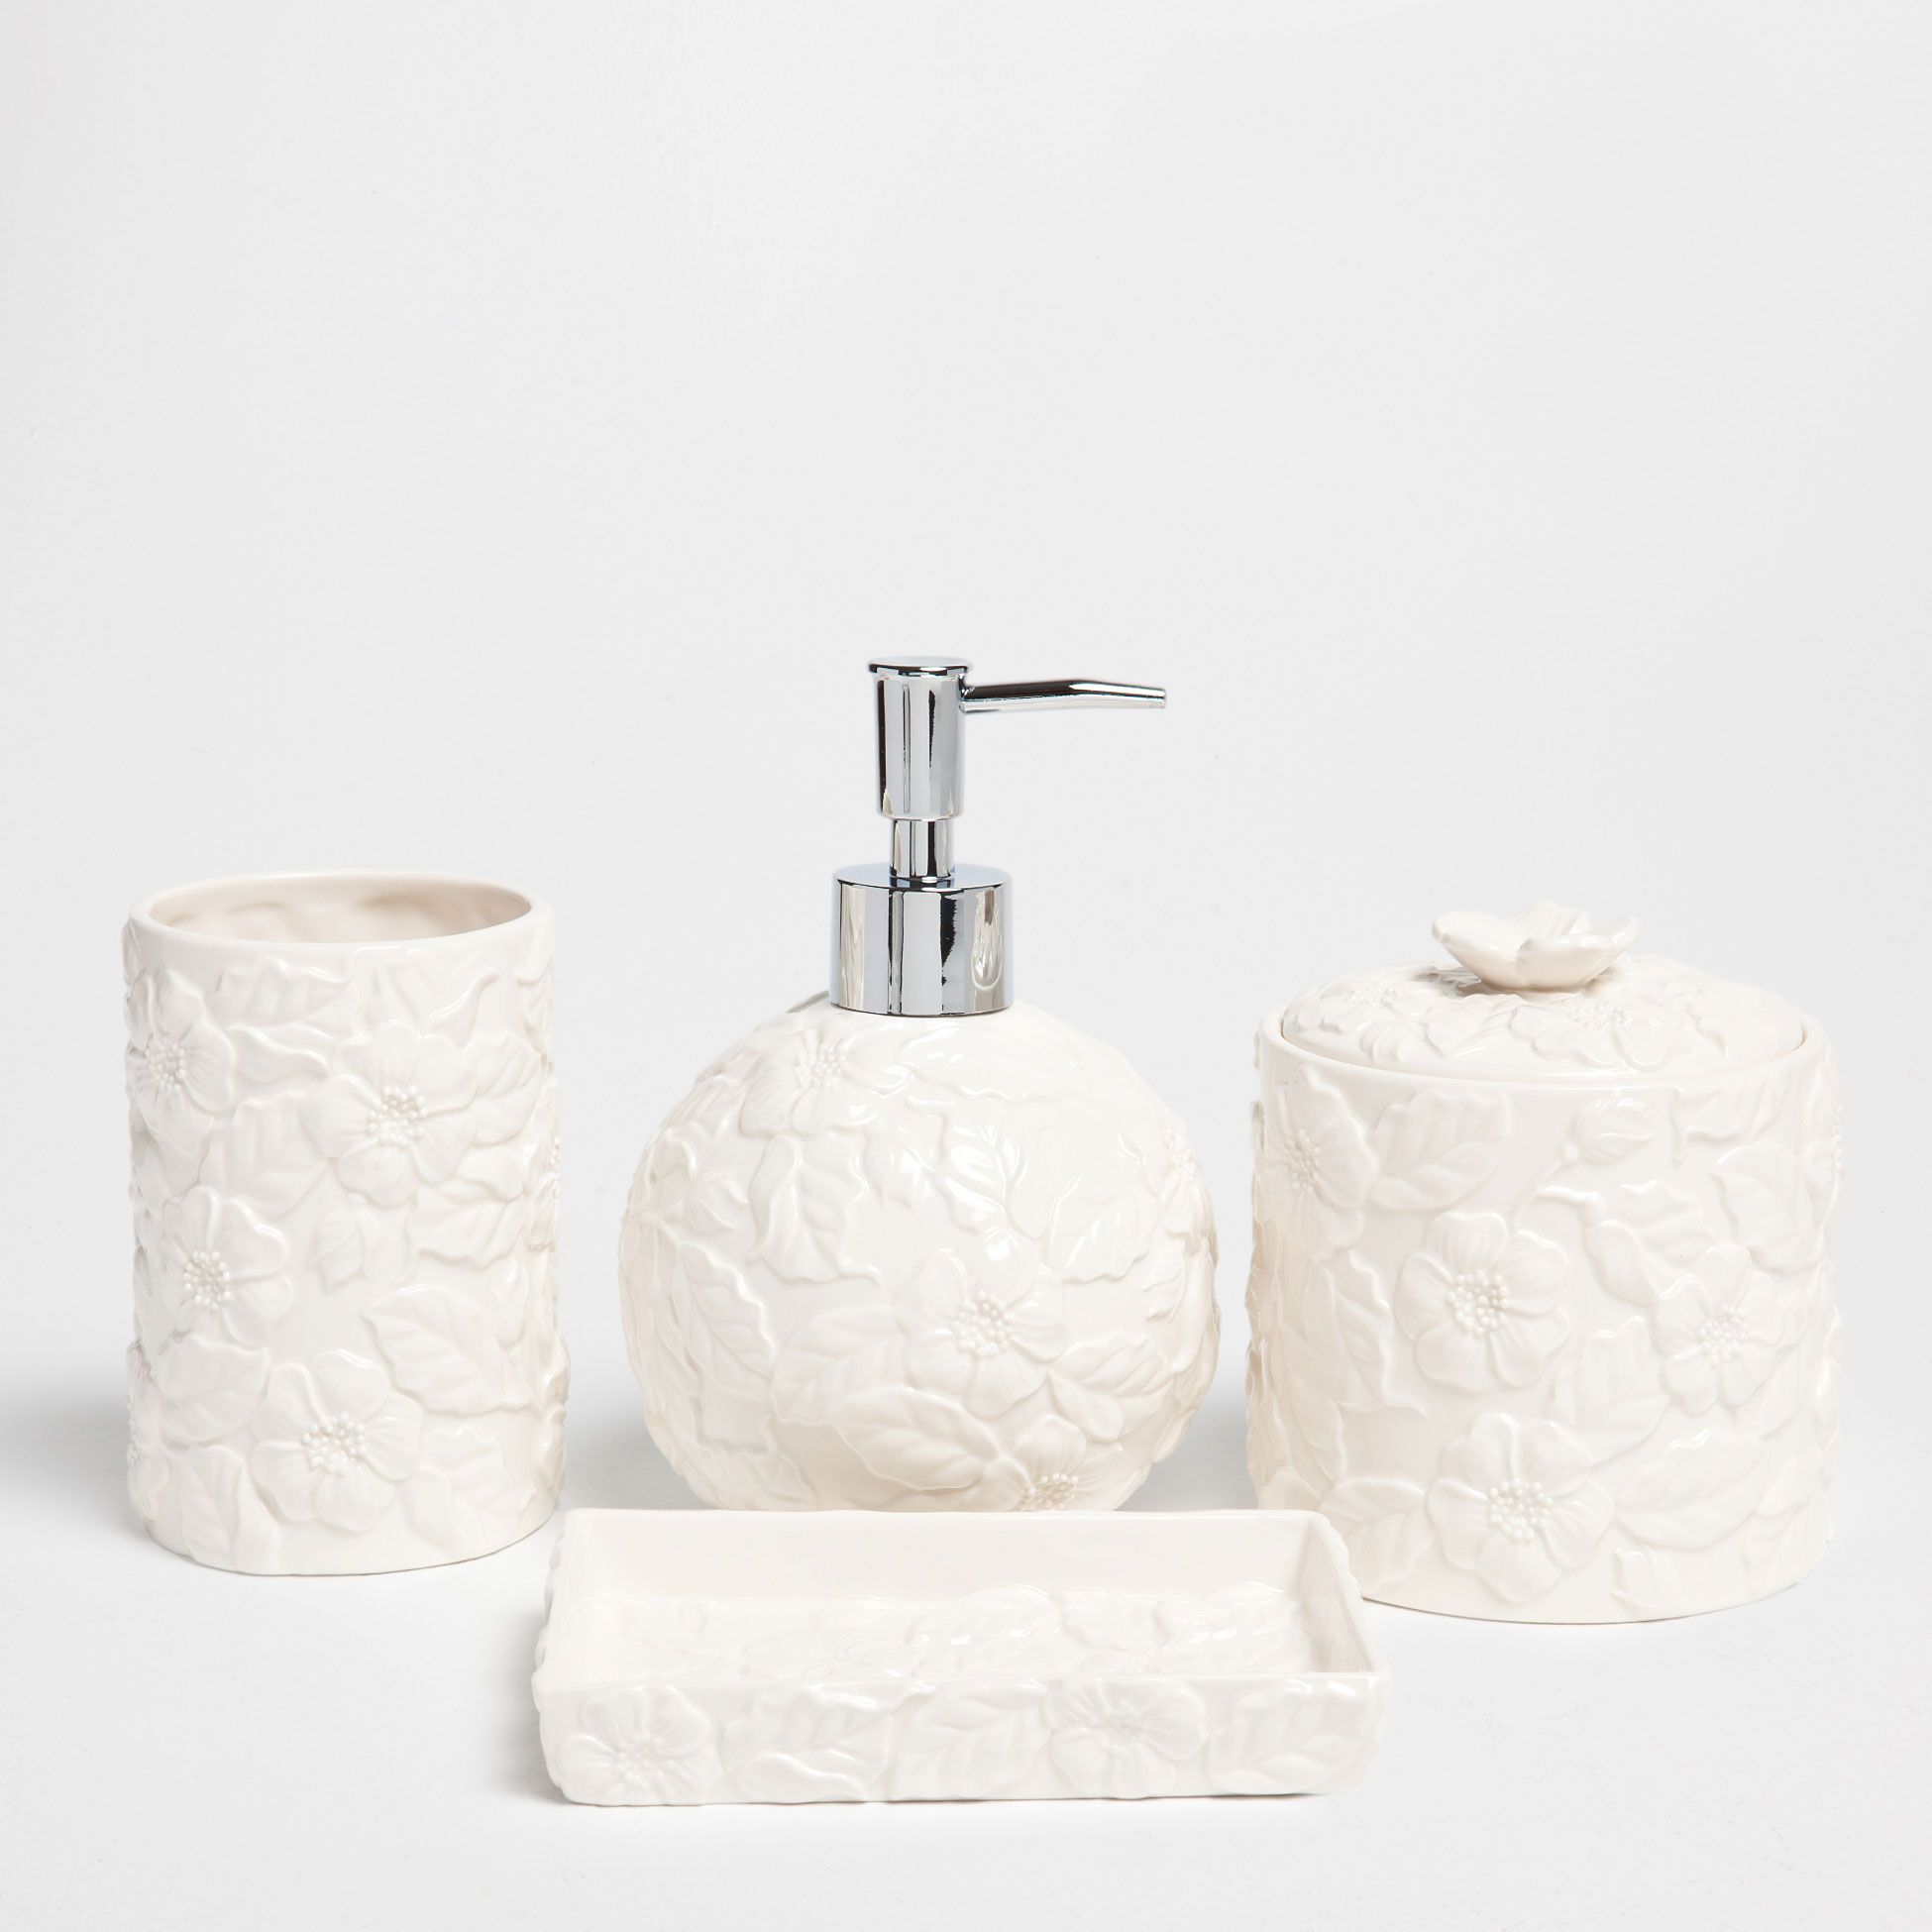 White Bathroom Set With A Raised Design